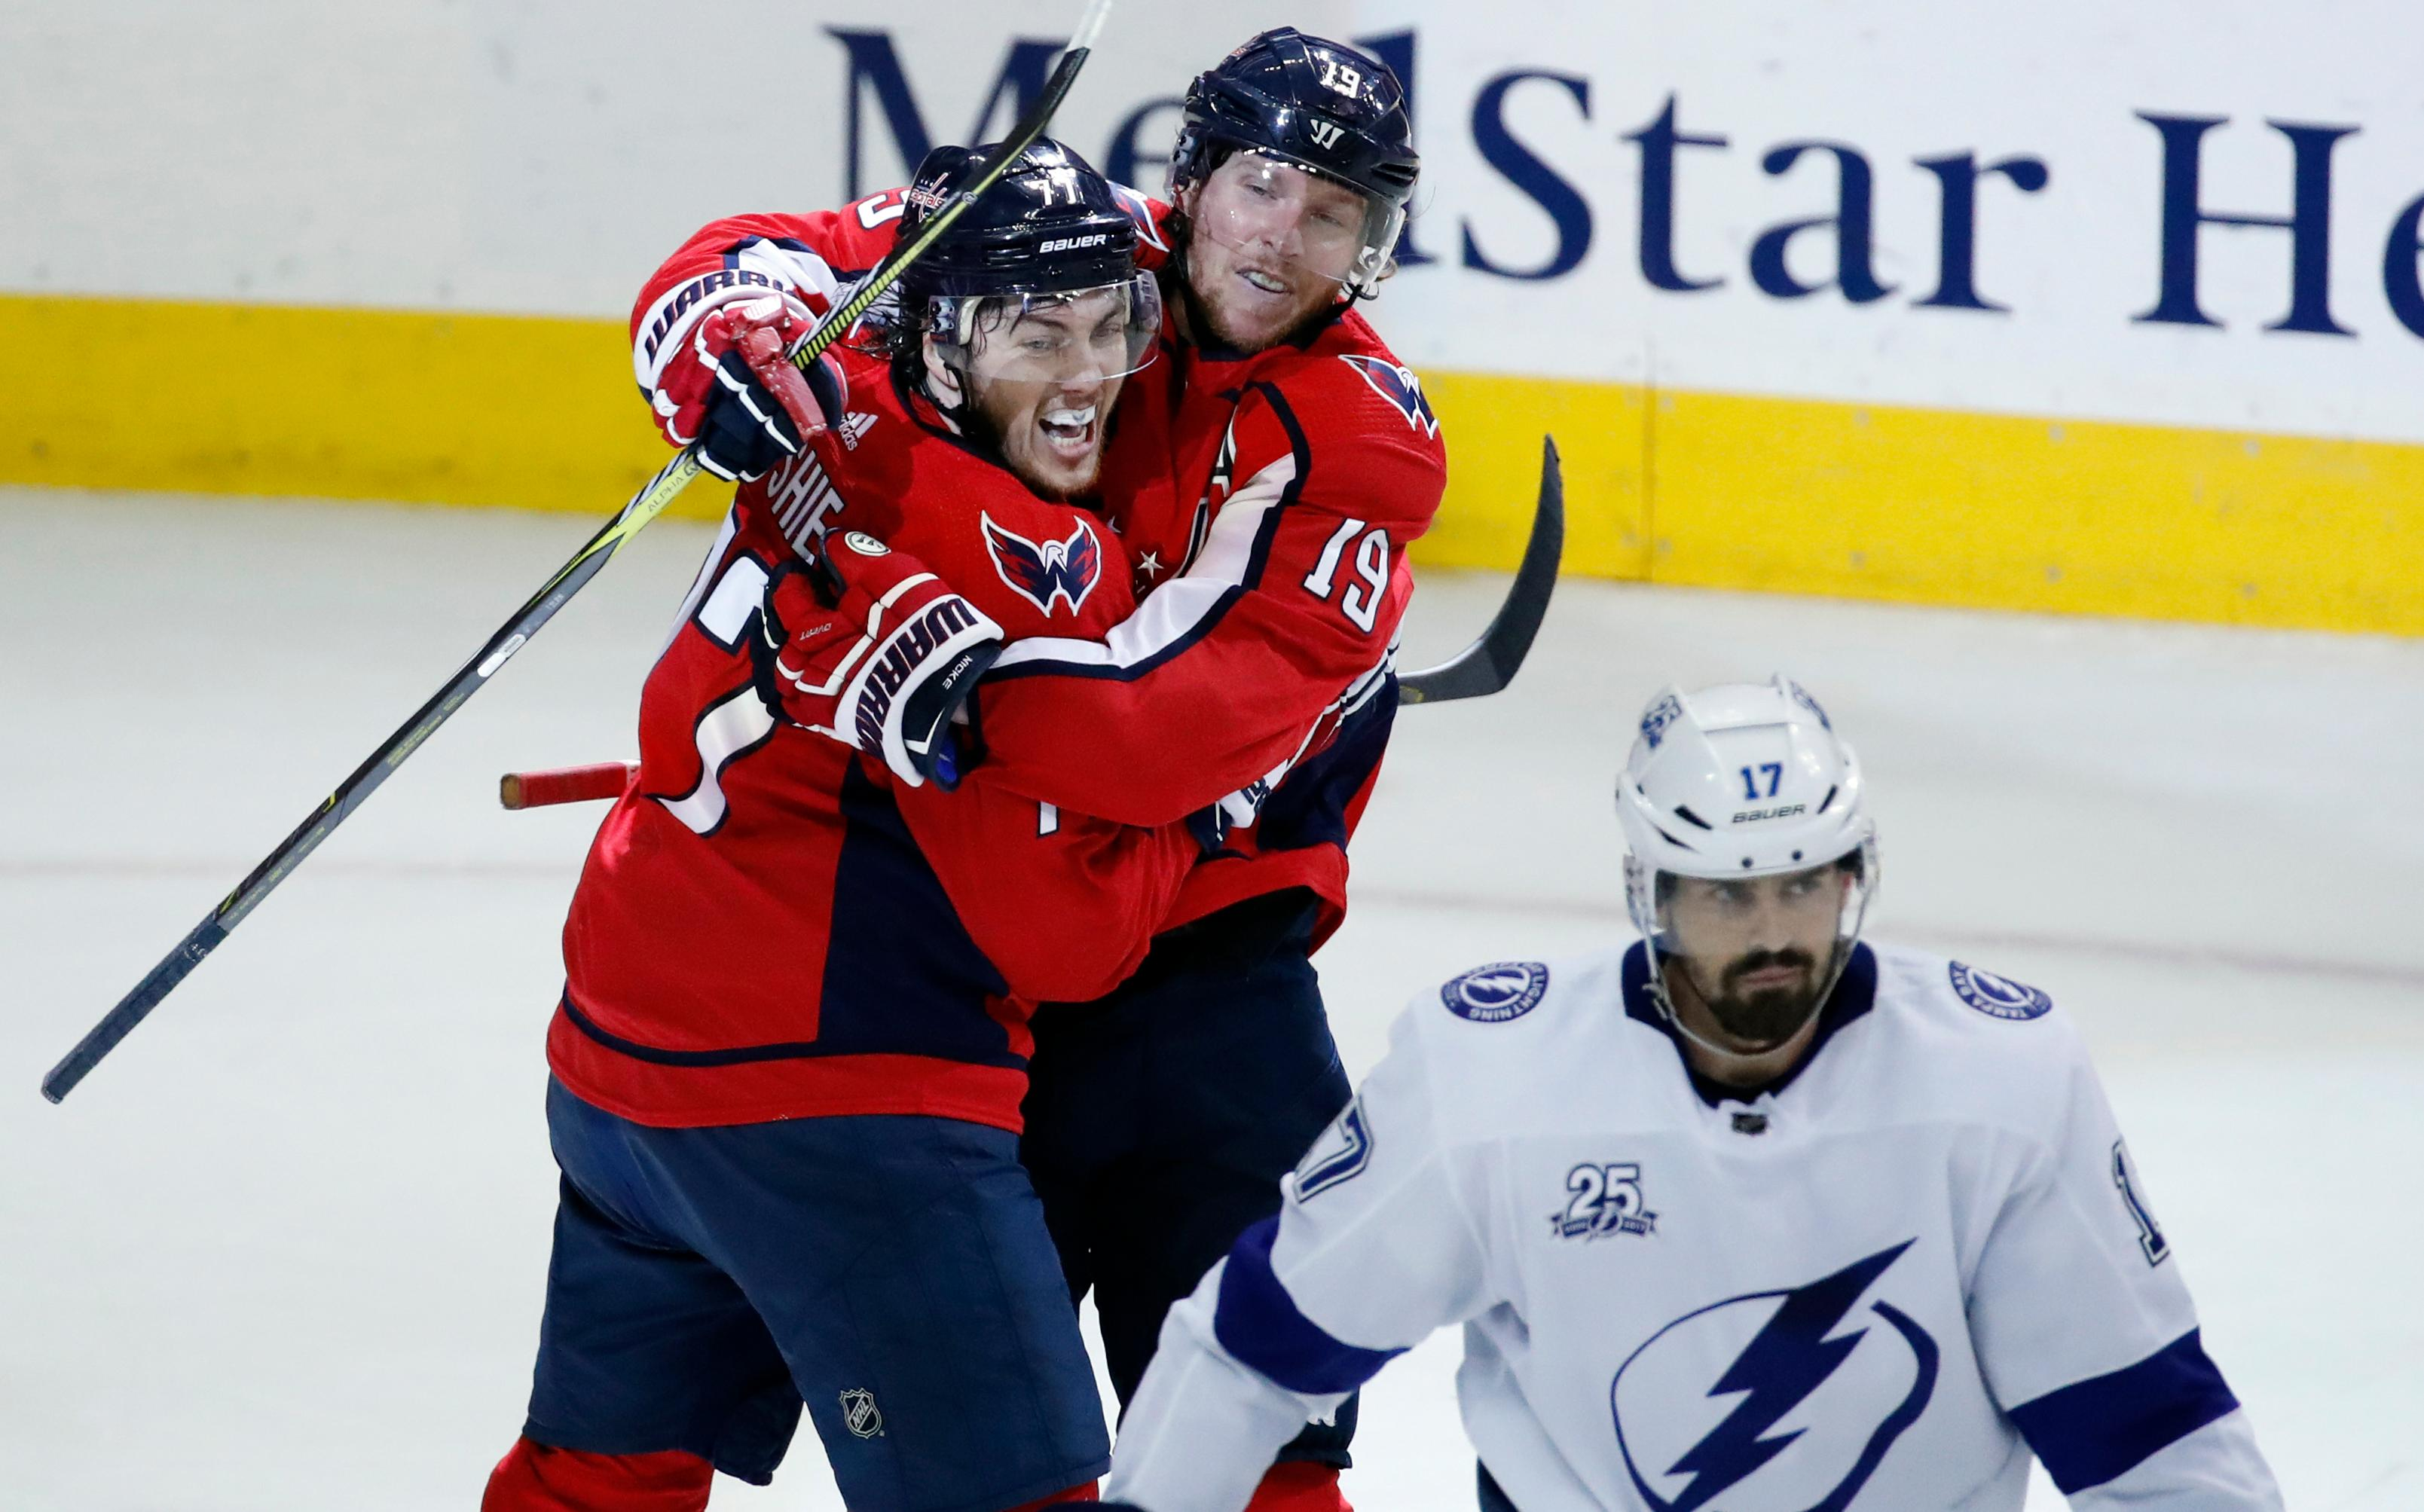 Washington Capitals right wing T.J. Oshie, left, and center Nicklas Backstrom, from Sweden, celebrate a goal by Oshie with Tampa Bay Lightning left wing Alex Killorn (17) nearby during the second period of Game 6 of the NHL Eastern Conference finals hockey playoff series, Monday, May 21, 2018, in Washington. (AP Photo/Alex Brandon)